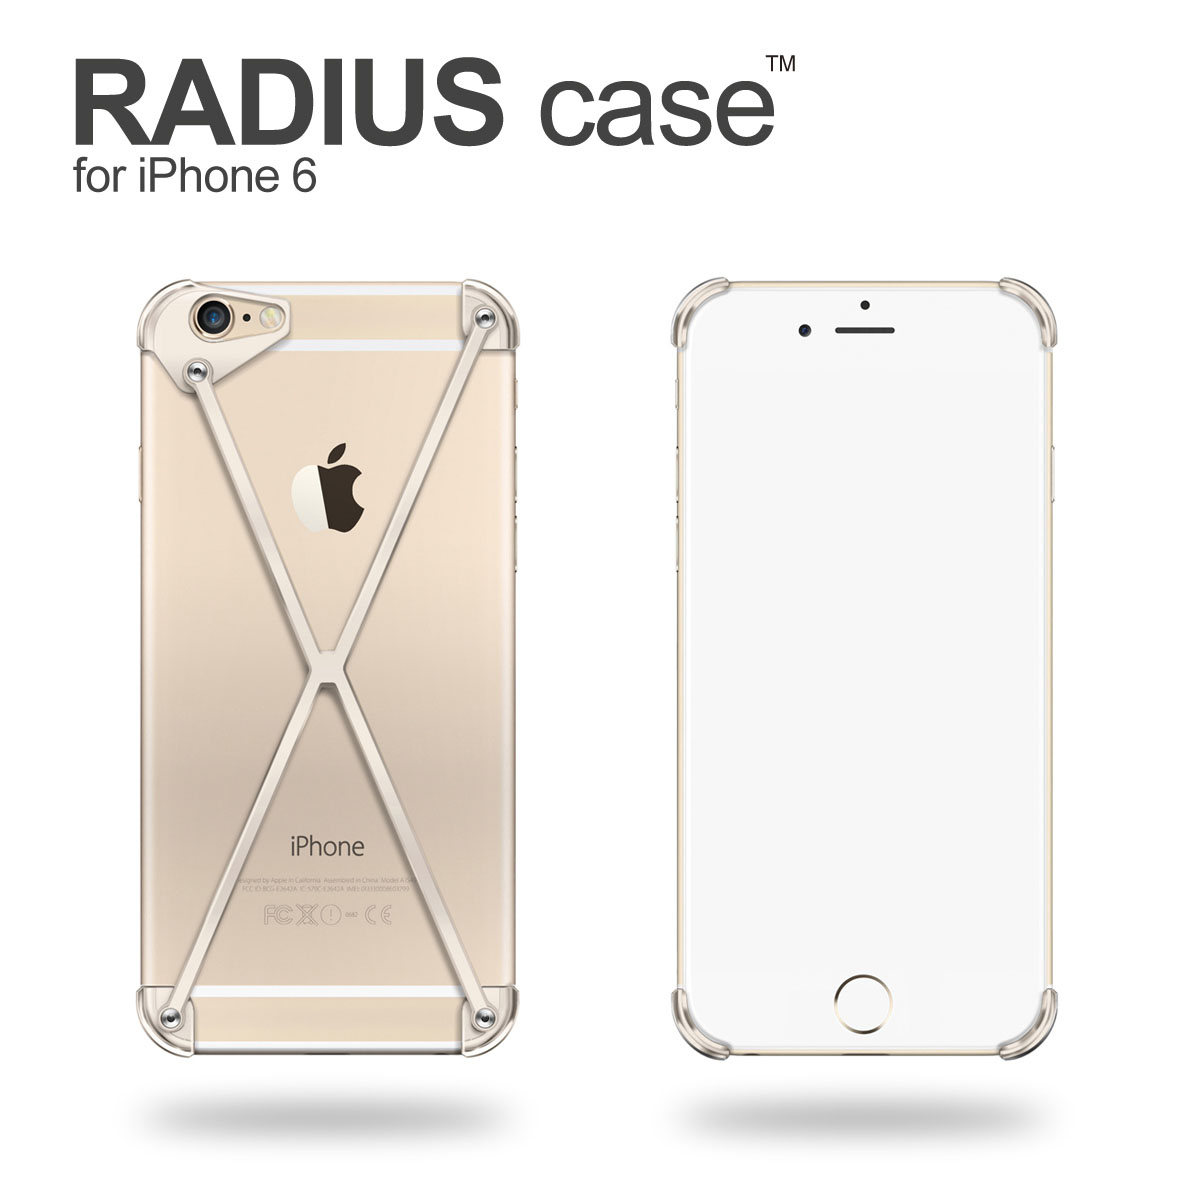 RADIUS case 6 All Gold X for iPhone6 by mod-3 / radial-all Gold limited edition Premium color iPhone6 cover iPhone case aluminum frame gift